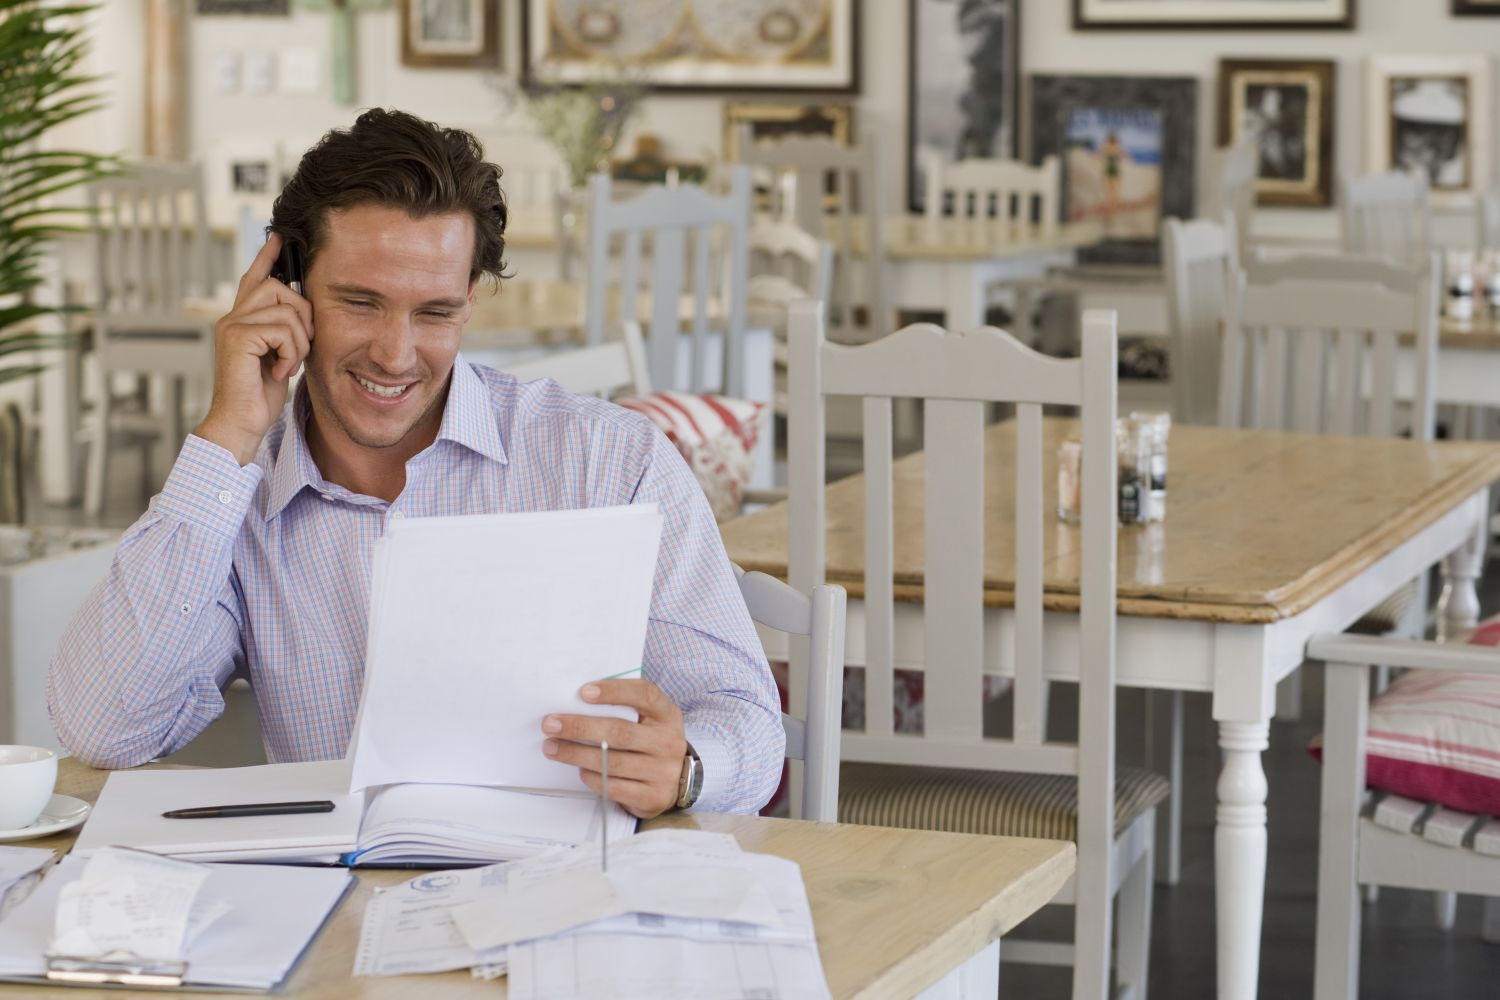 Considering professional insurance services in LaFayette, GA